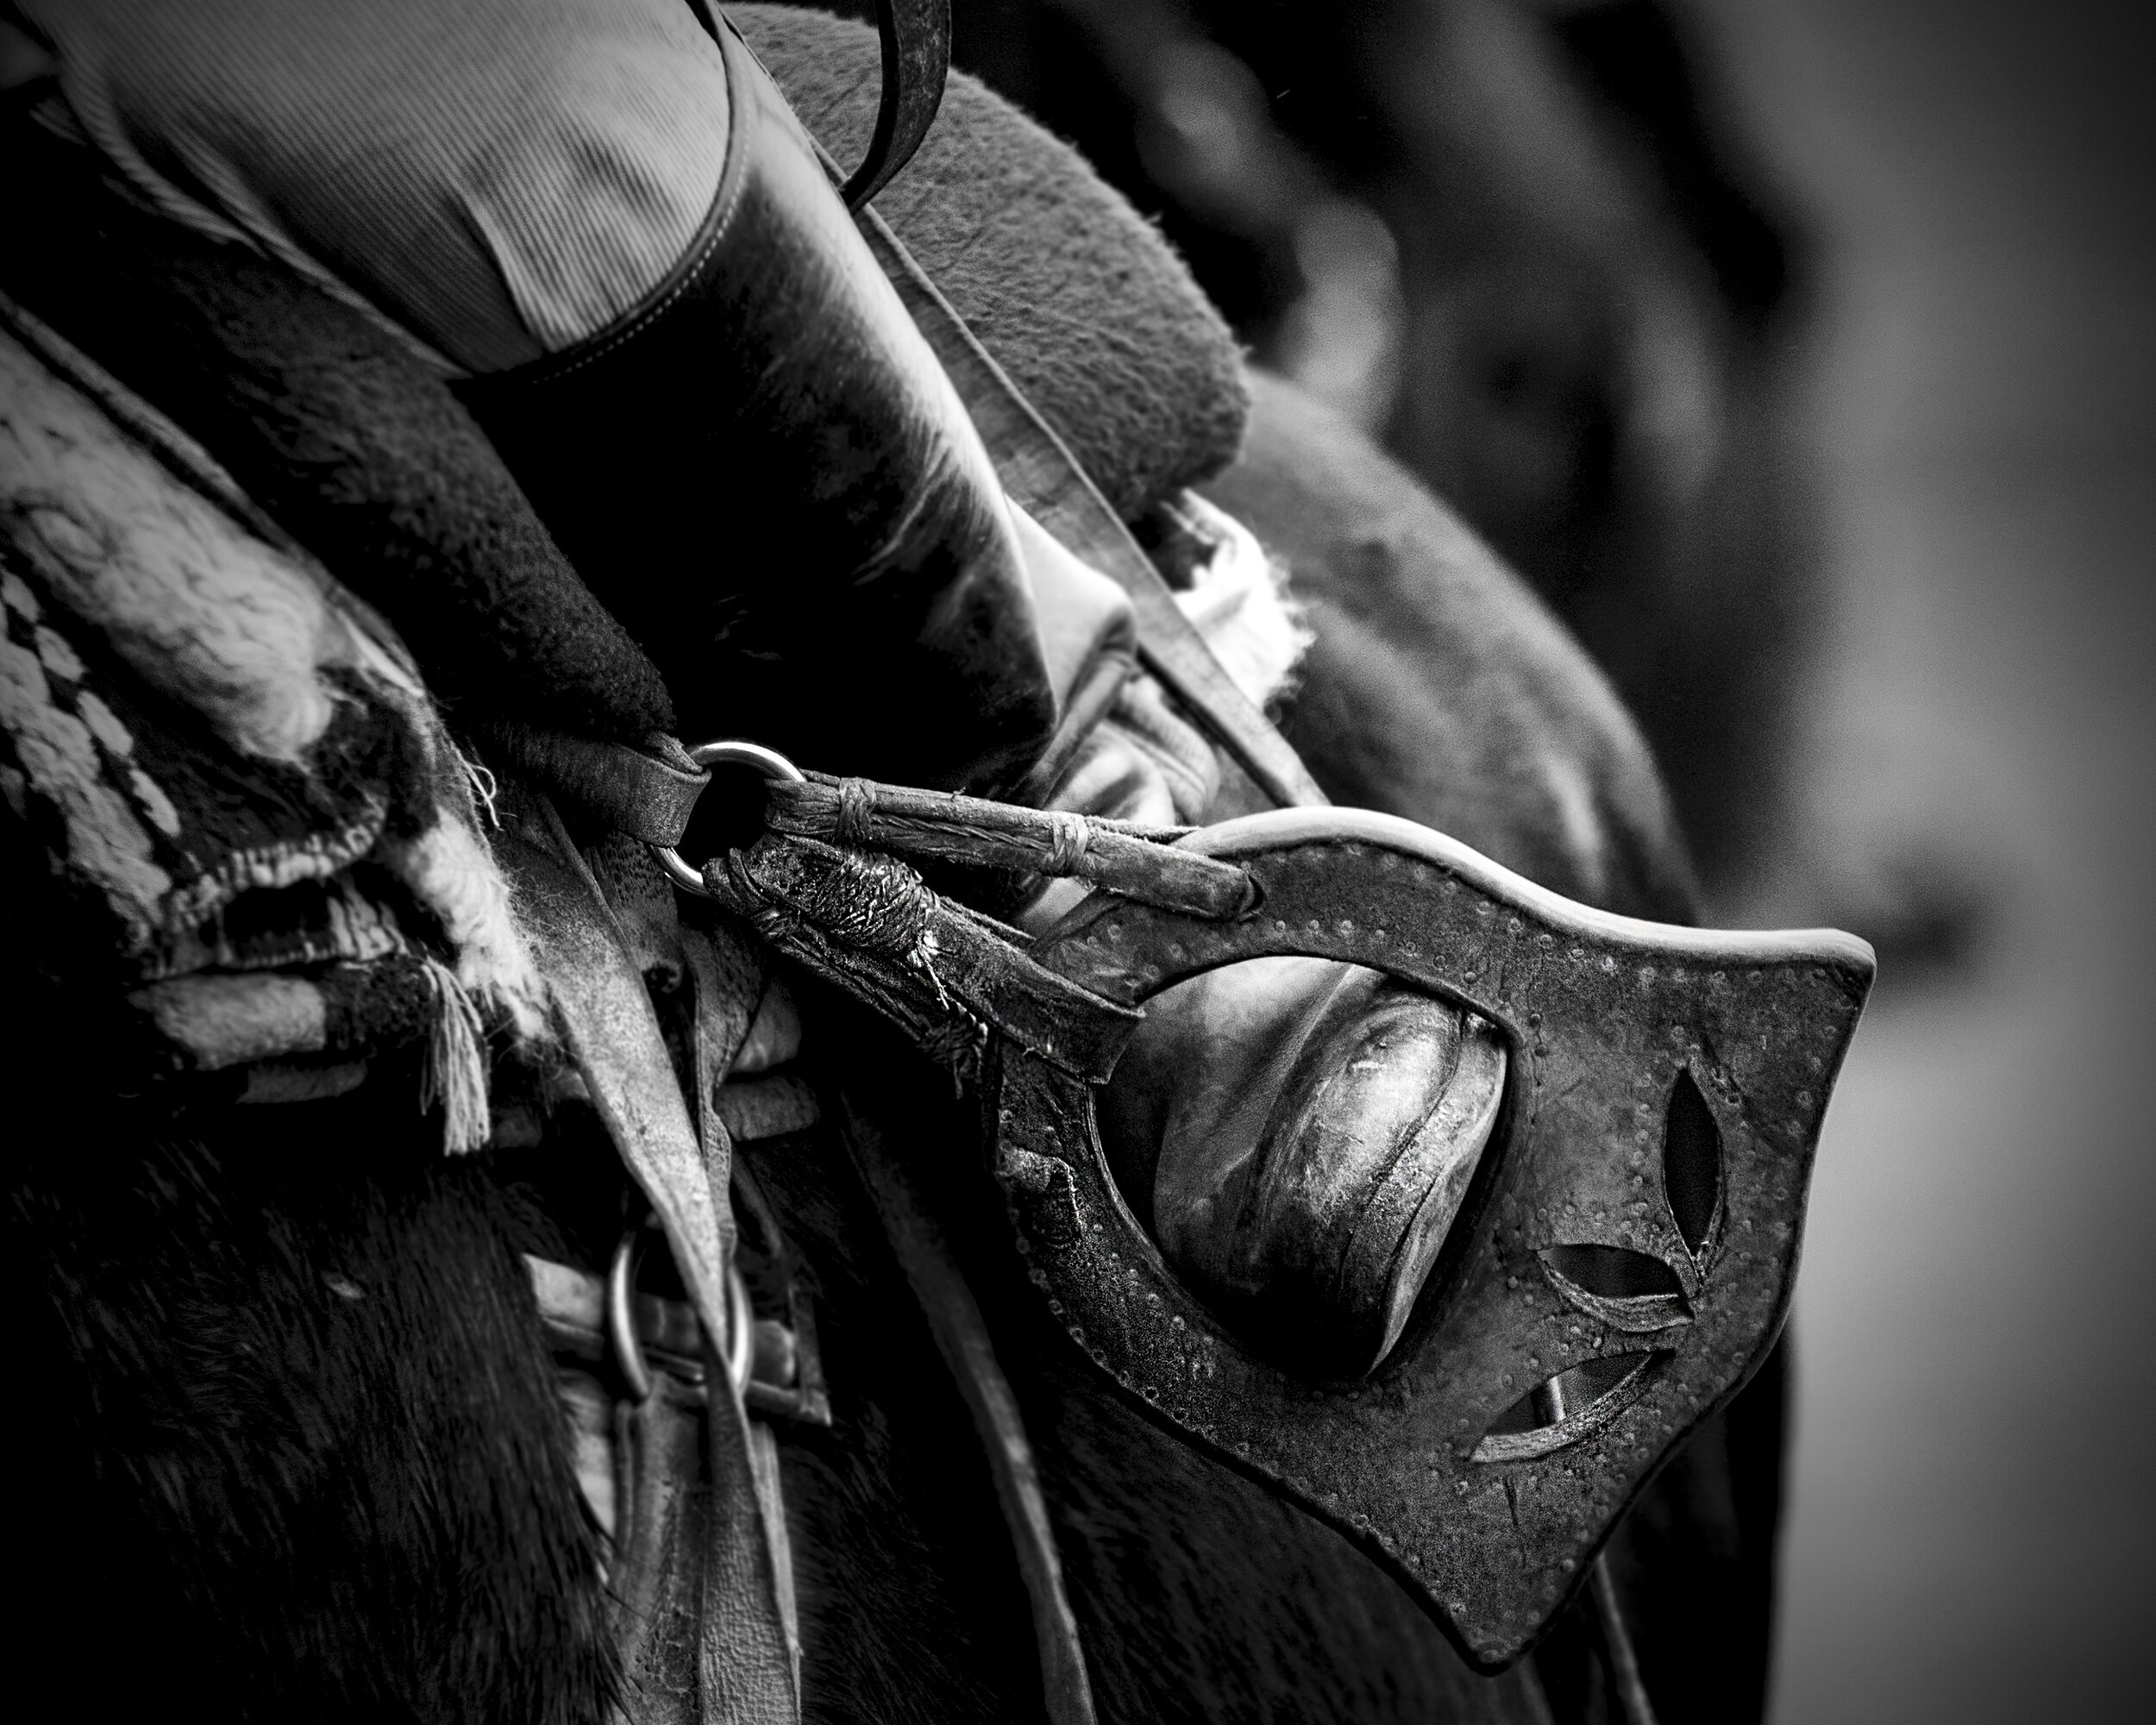 """One of a number of """"Gaucho"""" themed images in black and white. These are available as limited edition prints. More details available will be posted in November."""